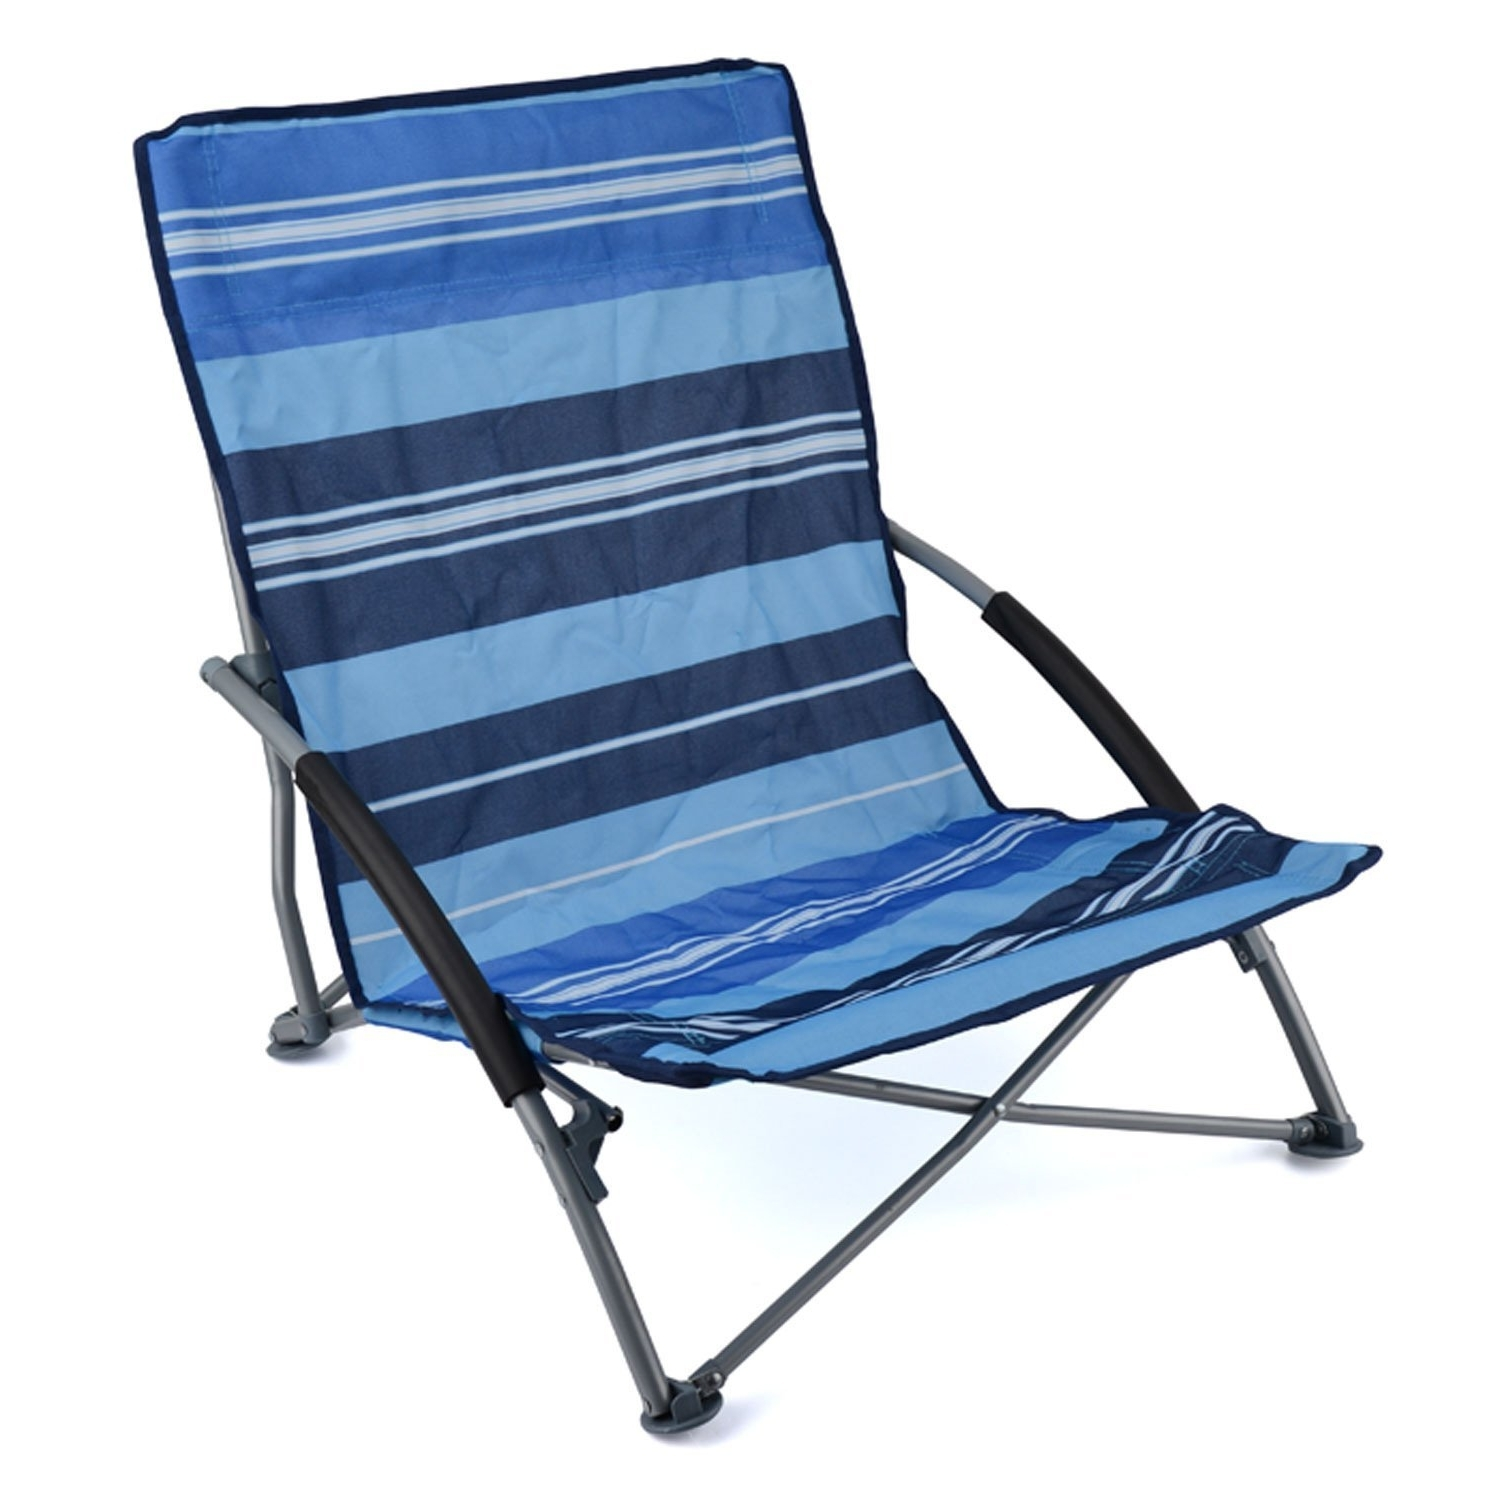 Convertible Chair : With Footrest Folding Bag Chairs Padded Pertaining To Widely Used Lightweight Chaise Lounge Chairs (View 5 of 15)